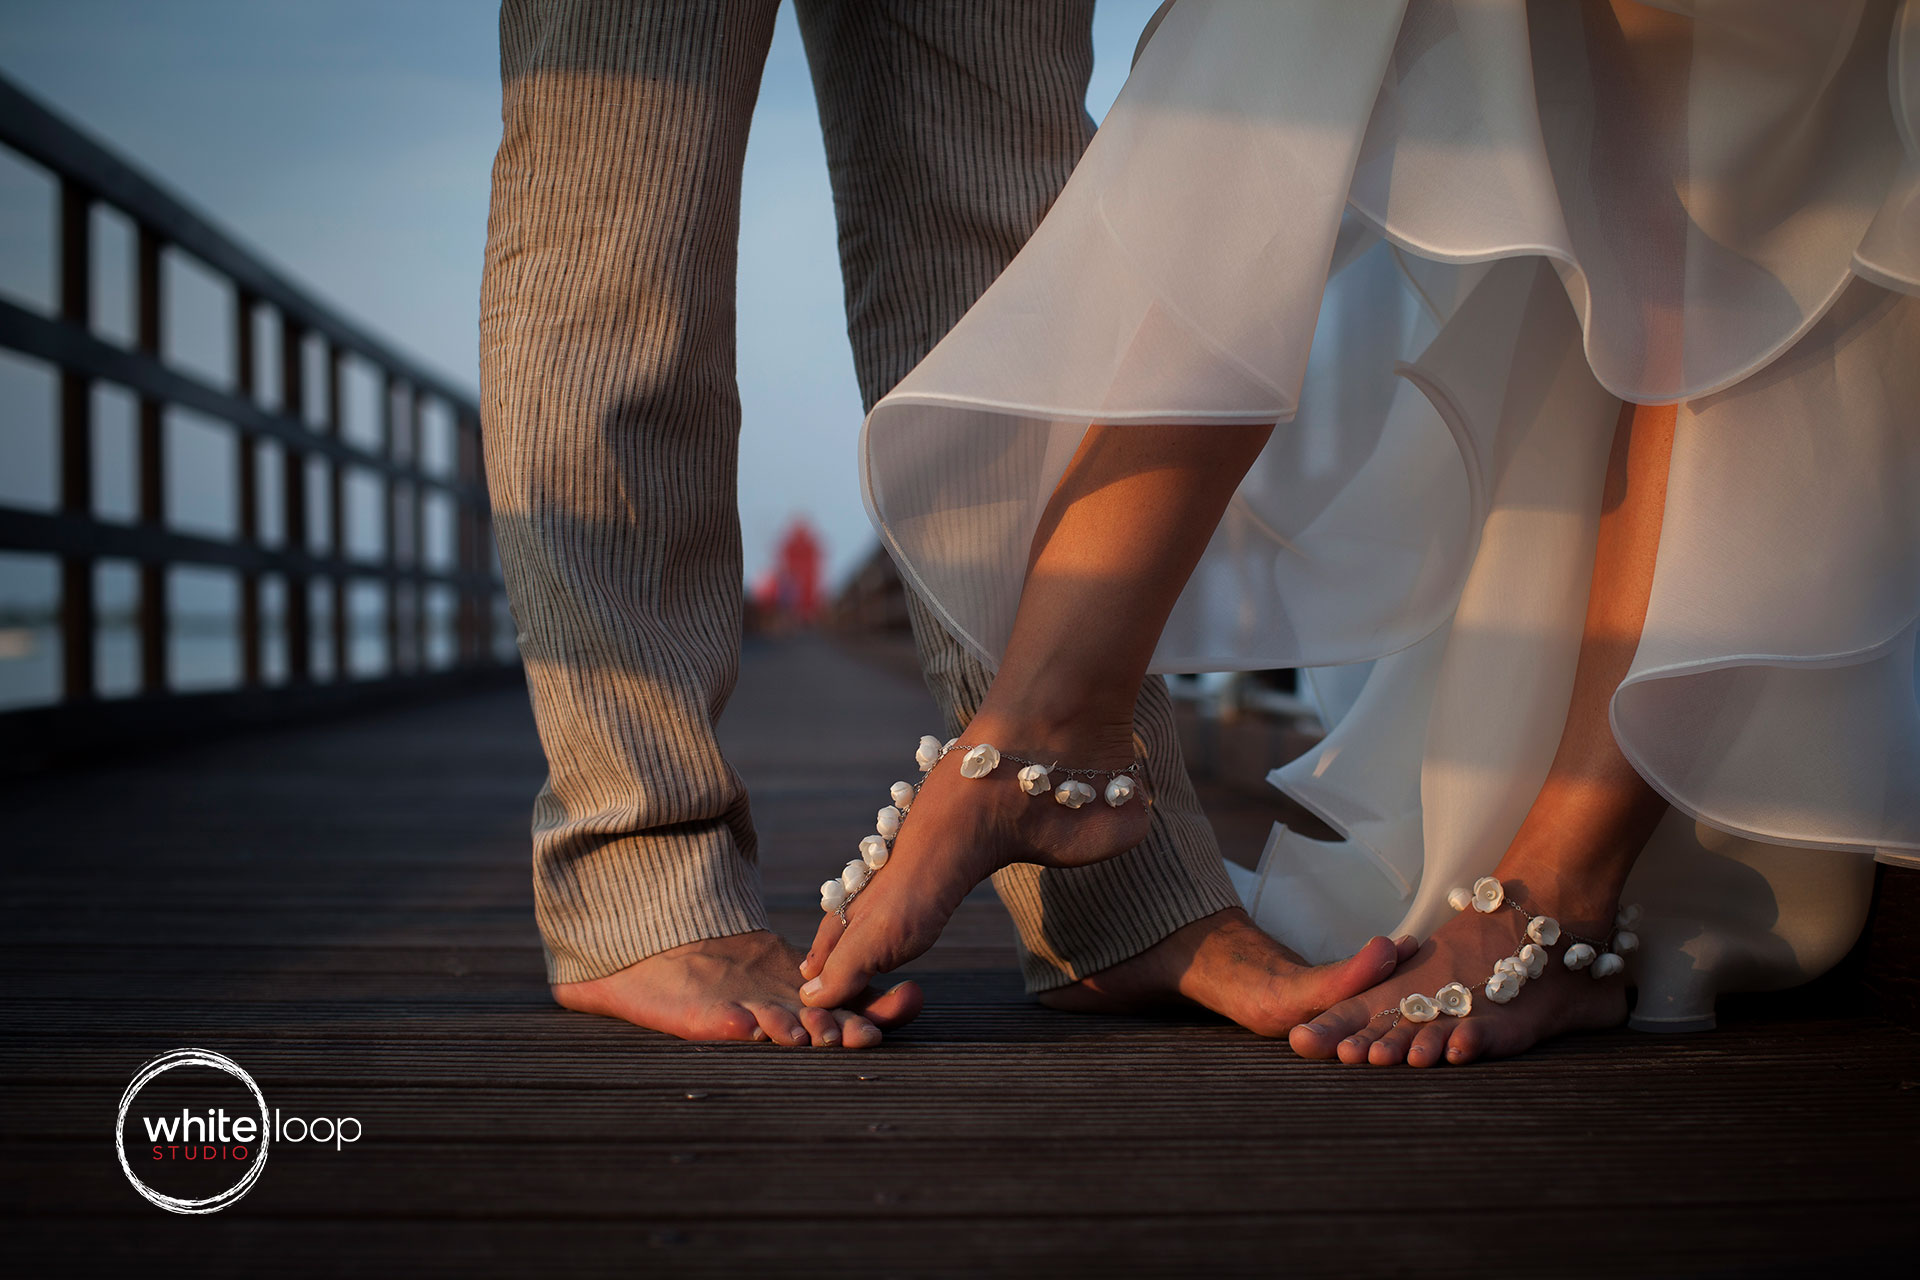 The feet of the couple barefoot with some accessories in the dock.